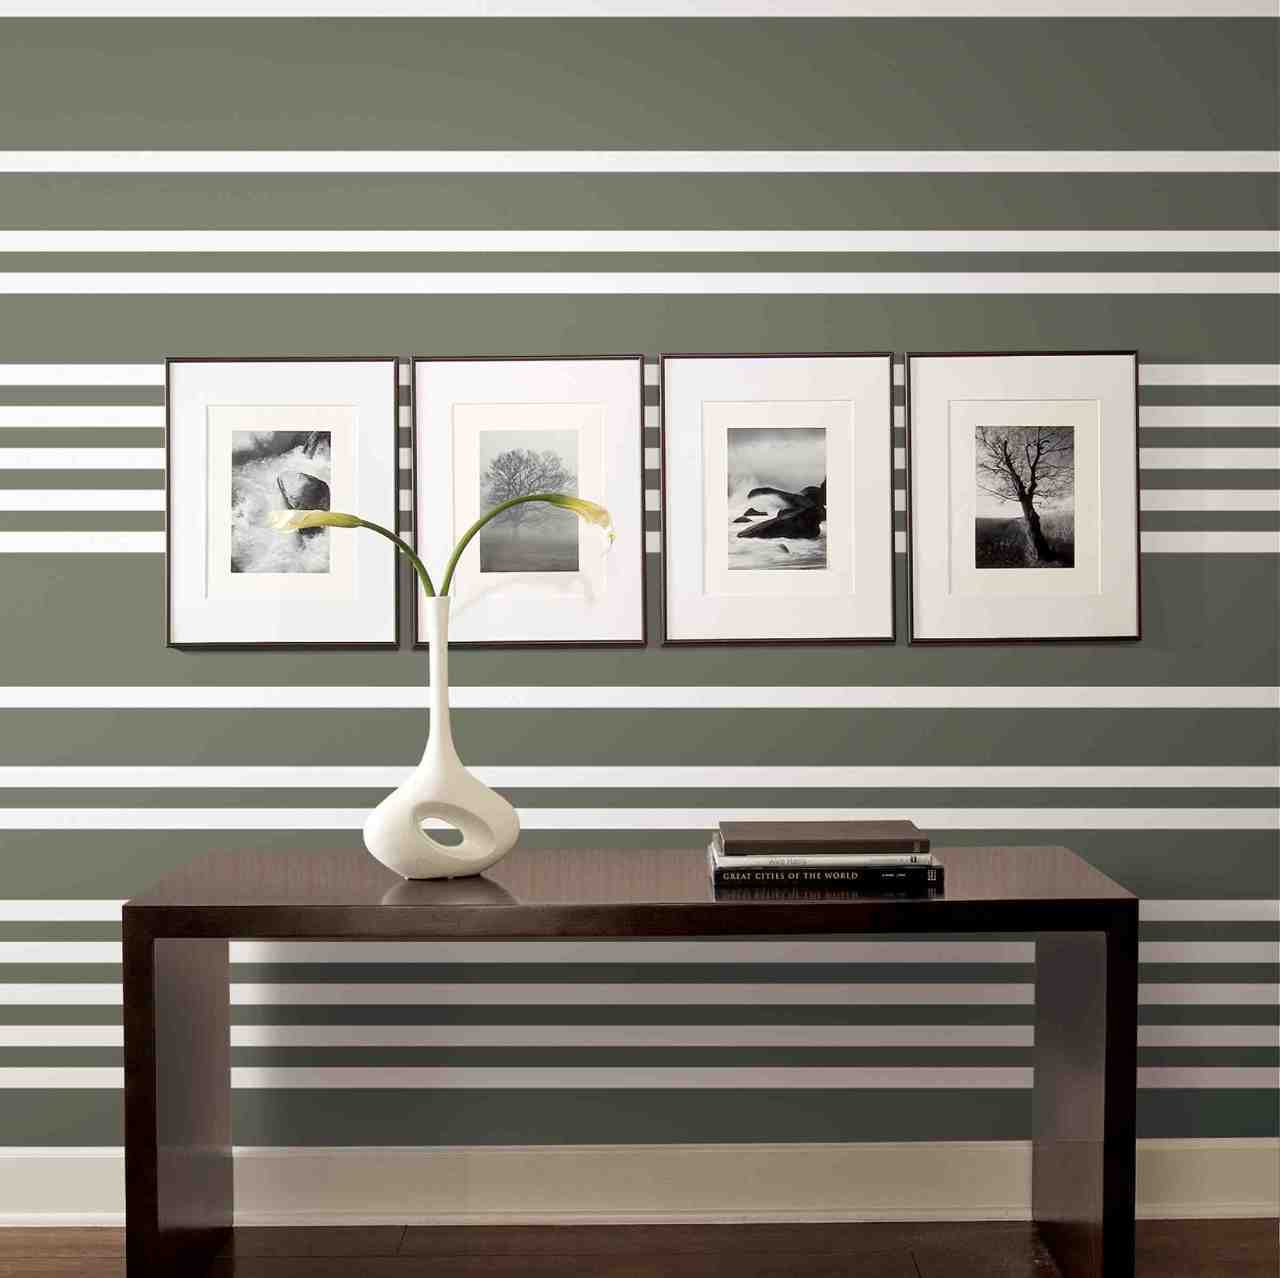 York Wallcoverings Stripes Resource Library SR1615 Scholarship 1280x1278